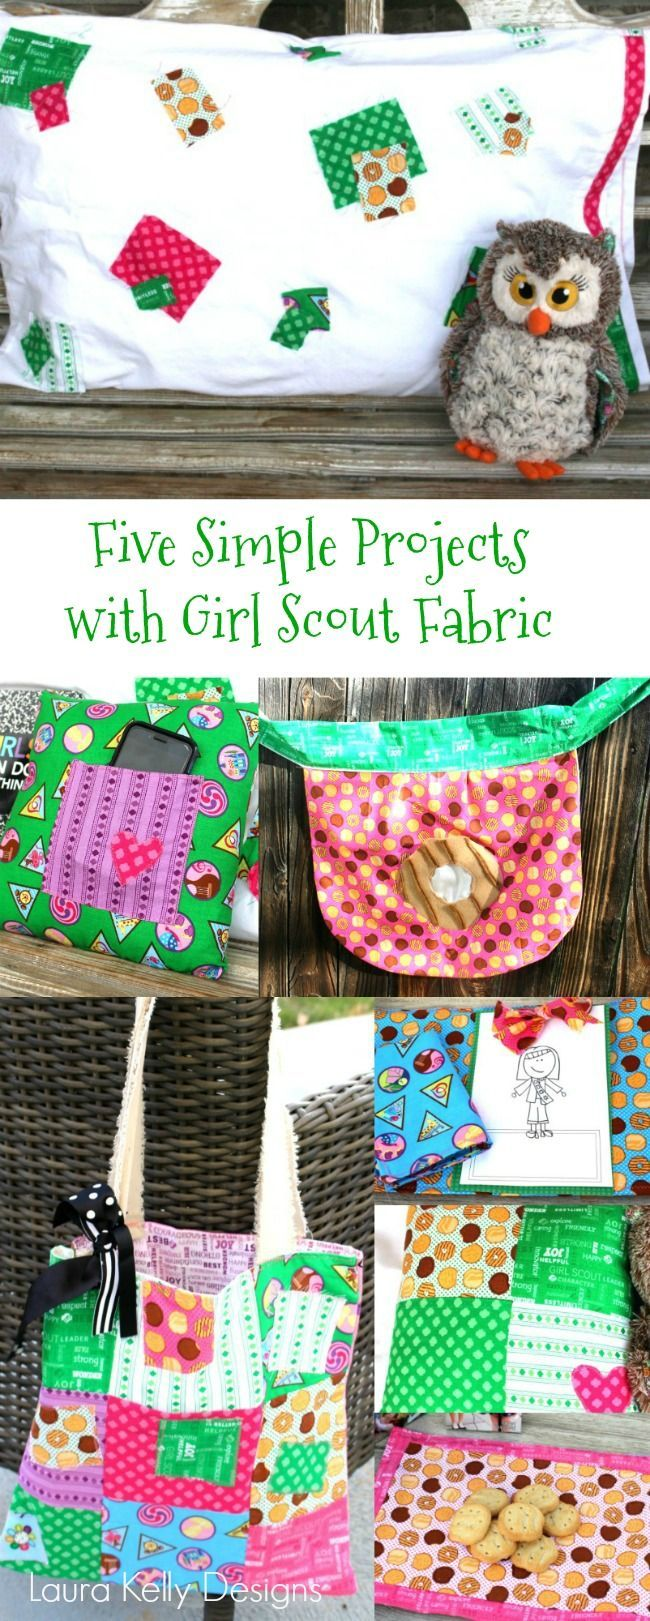 5 Great Ways to use Authentic Girl Scout Fabric